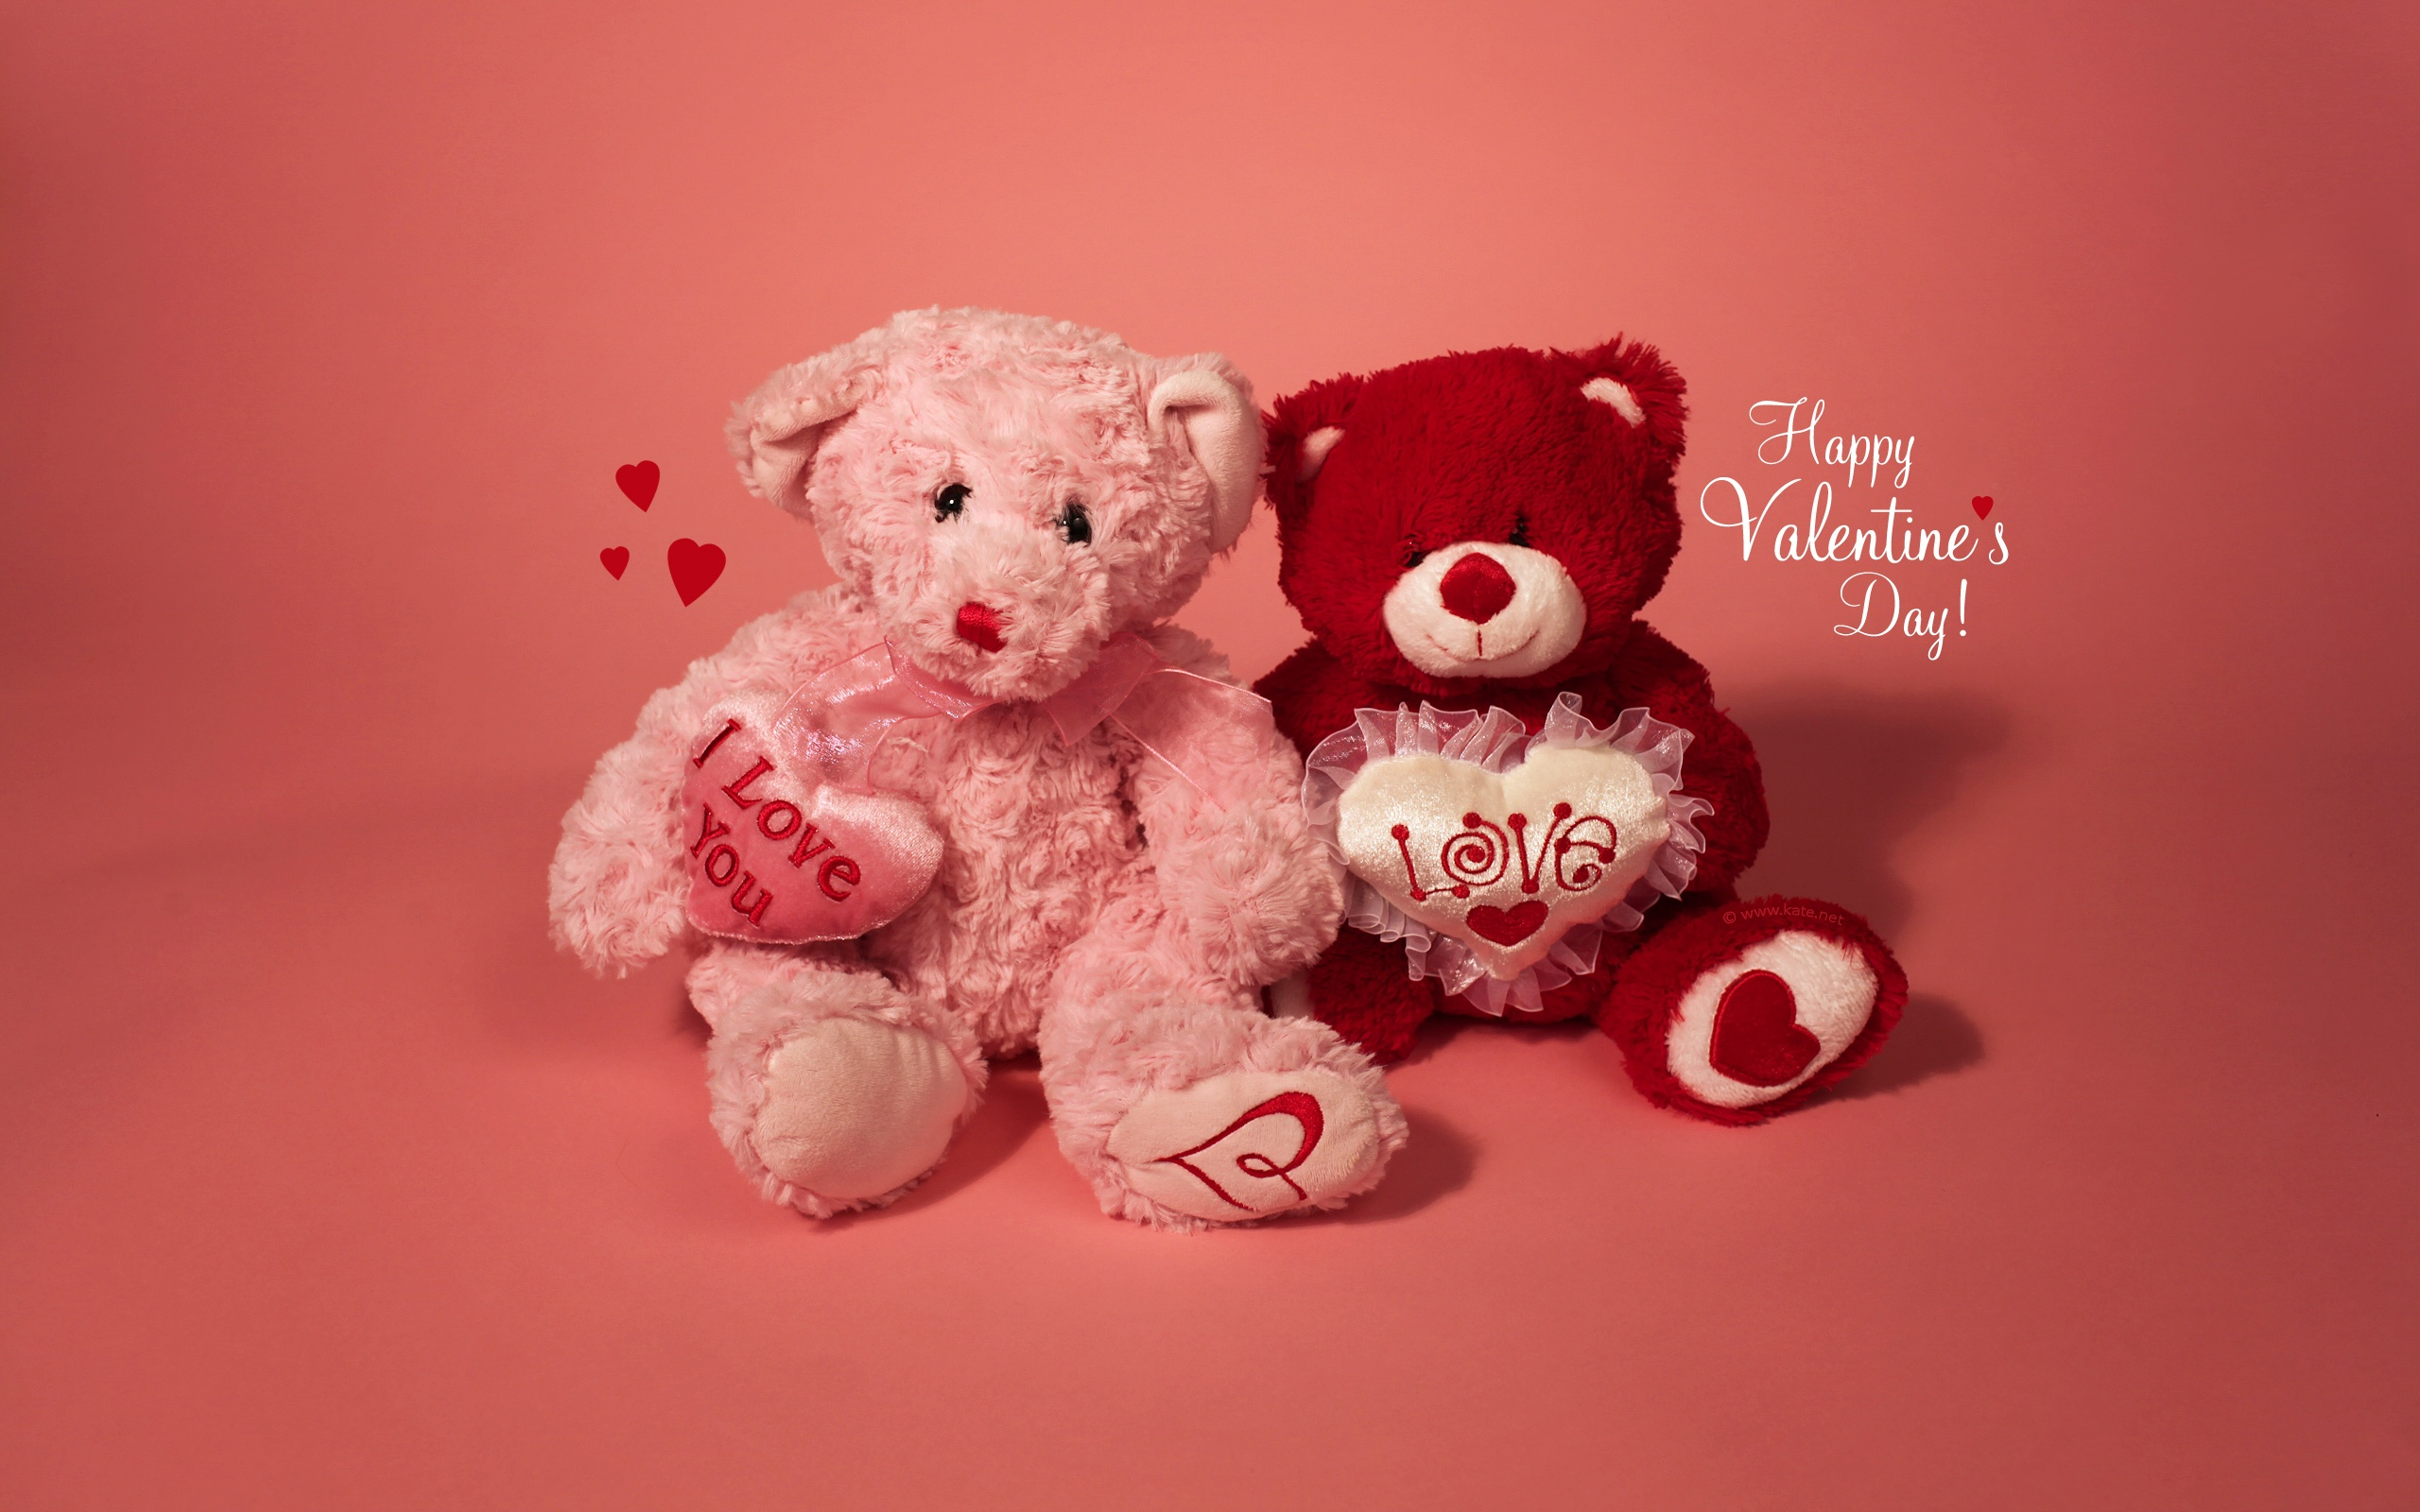 Valentines day wallpaper wallpapers for free download about (3,073 ...